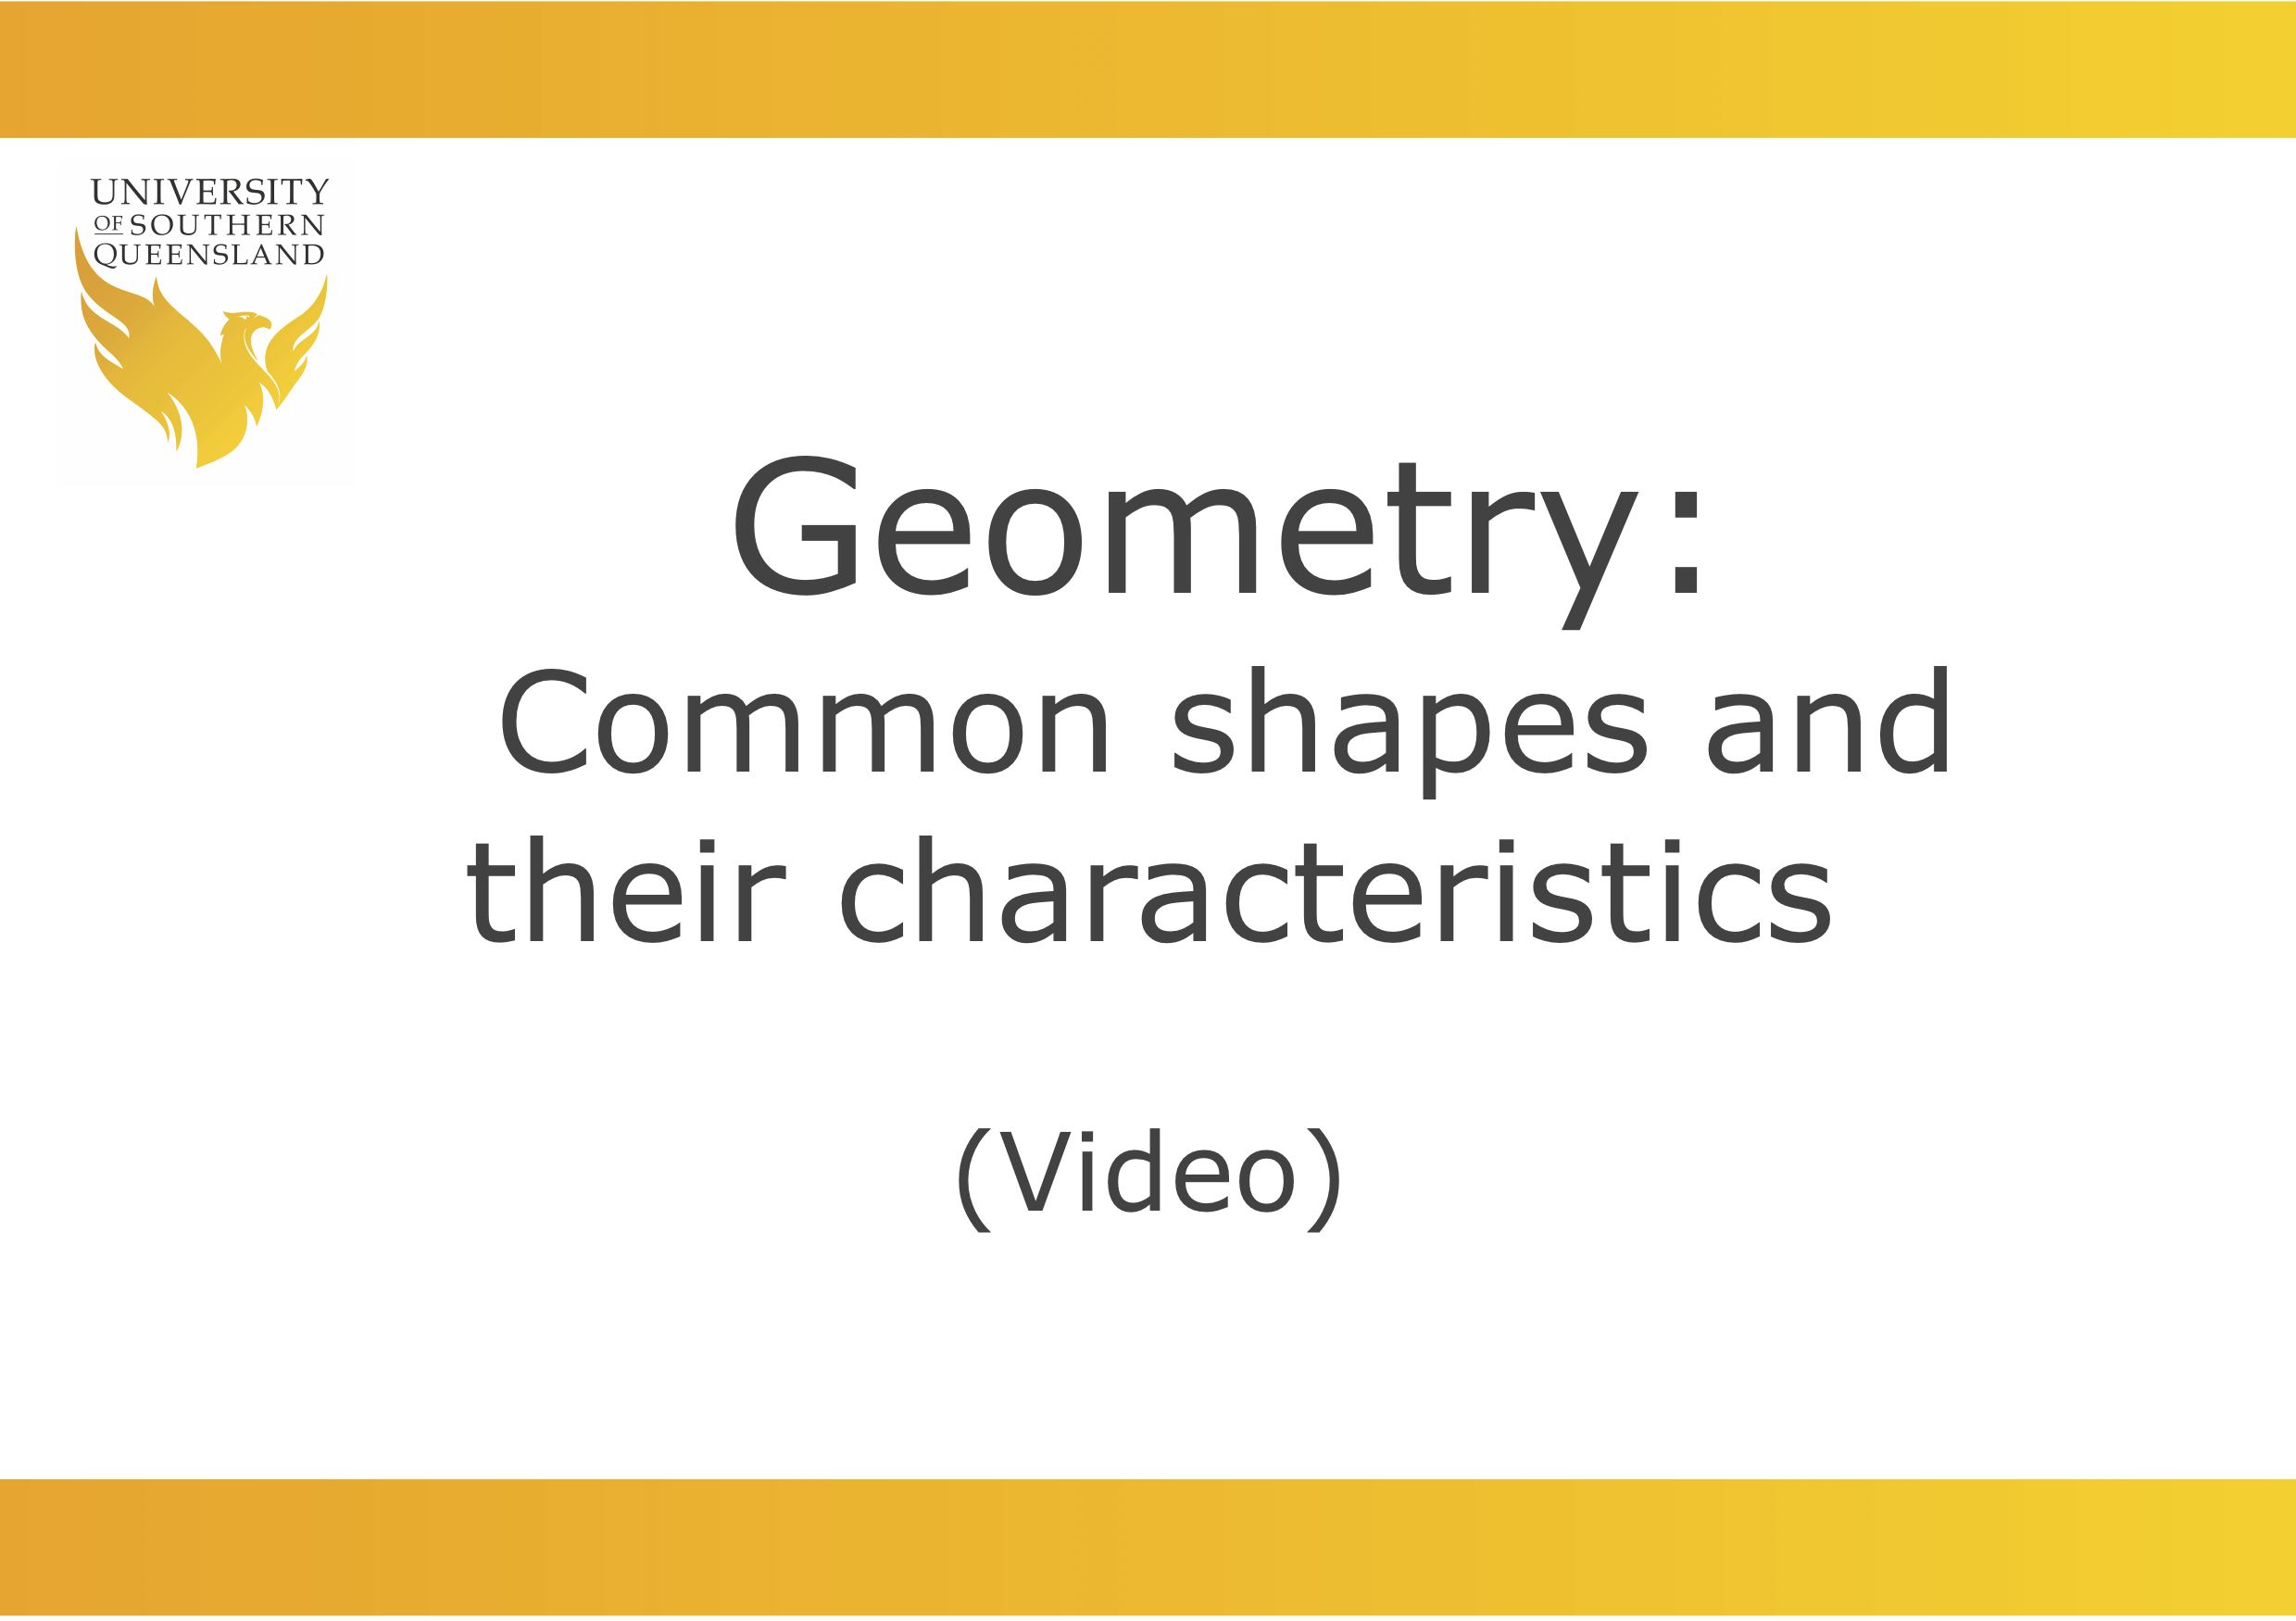 Image for Geometry video